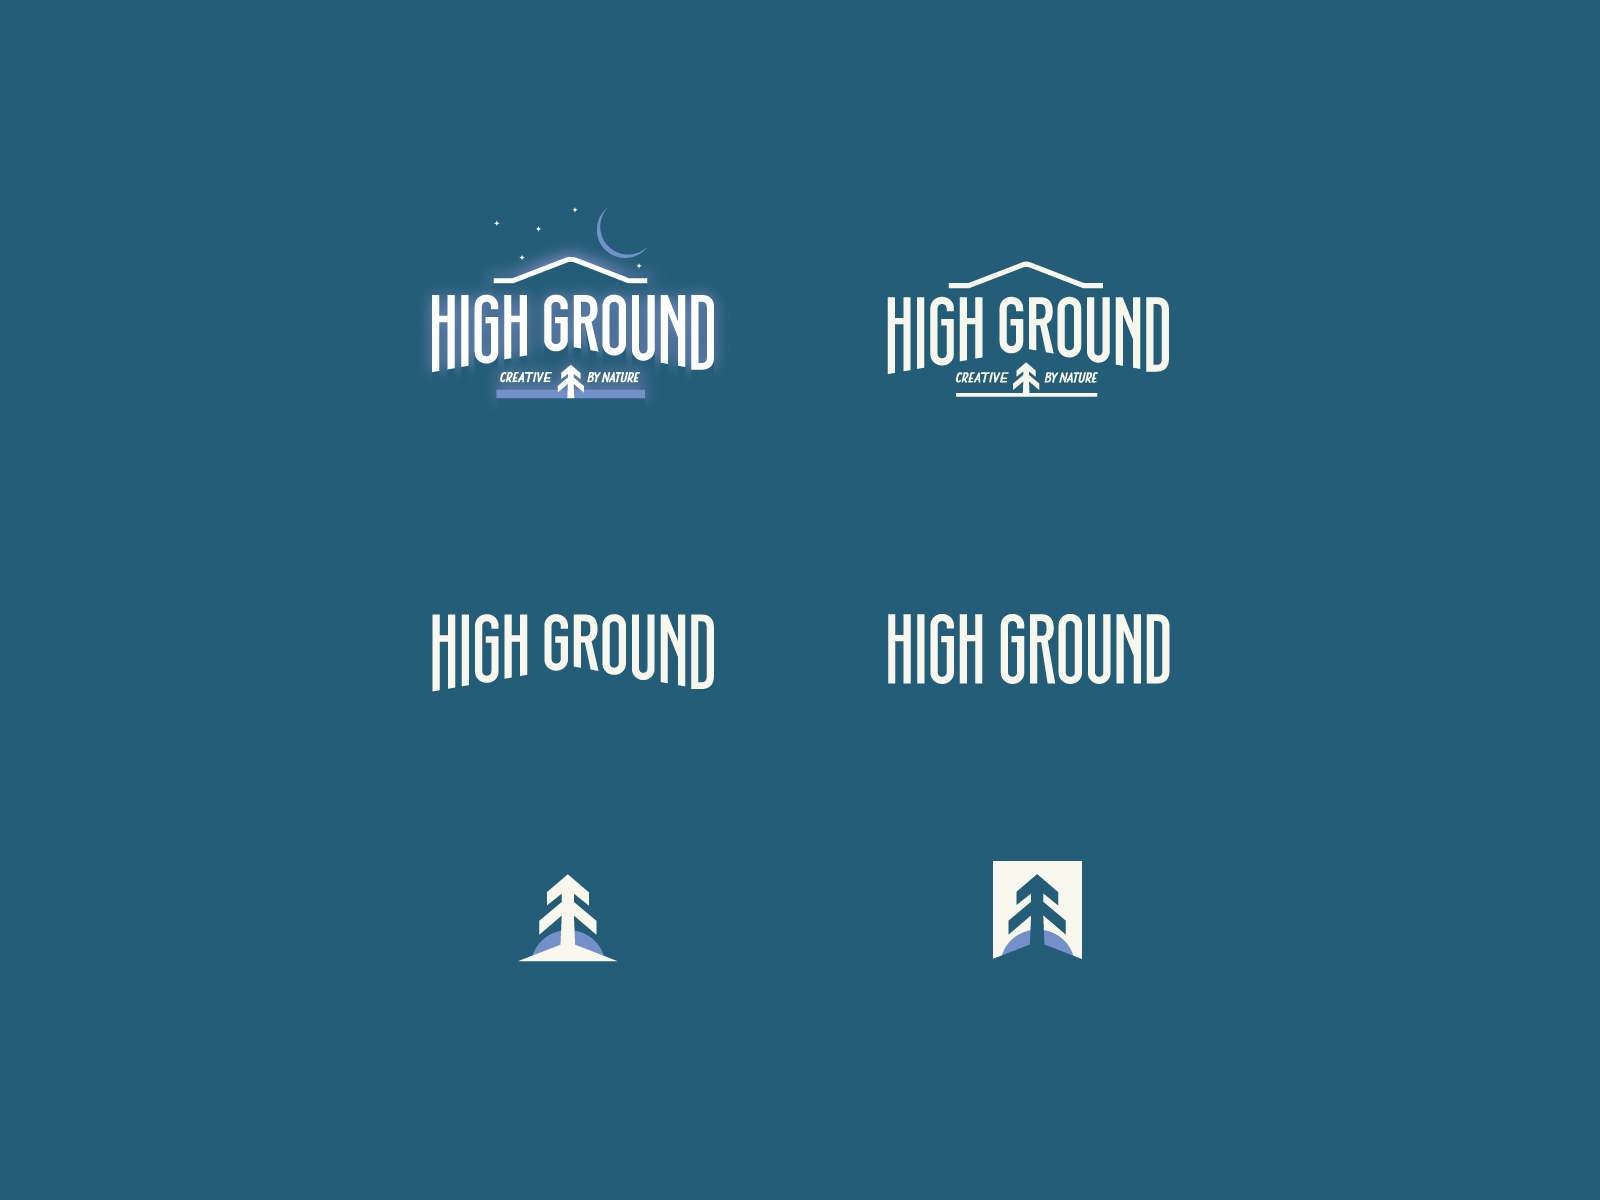 Logo Design in Reverse Colour for High Ground Brand Identity Design Project